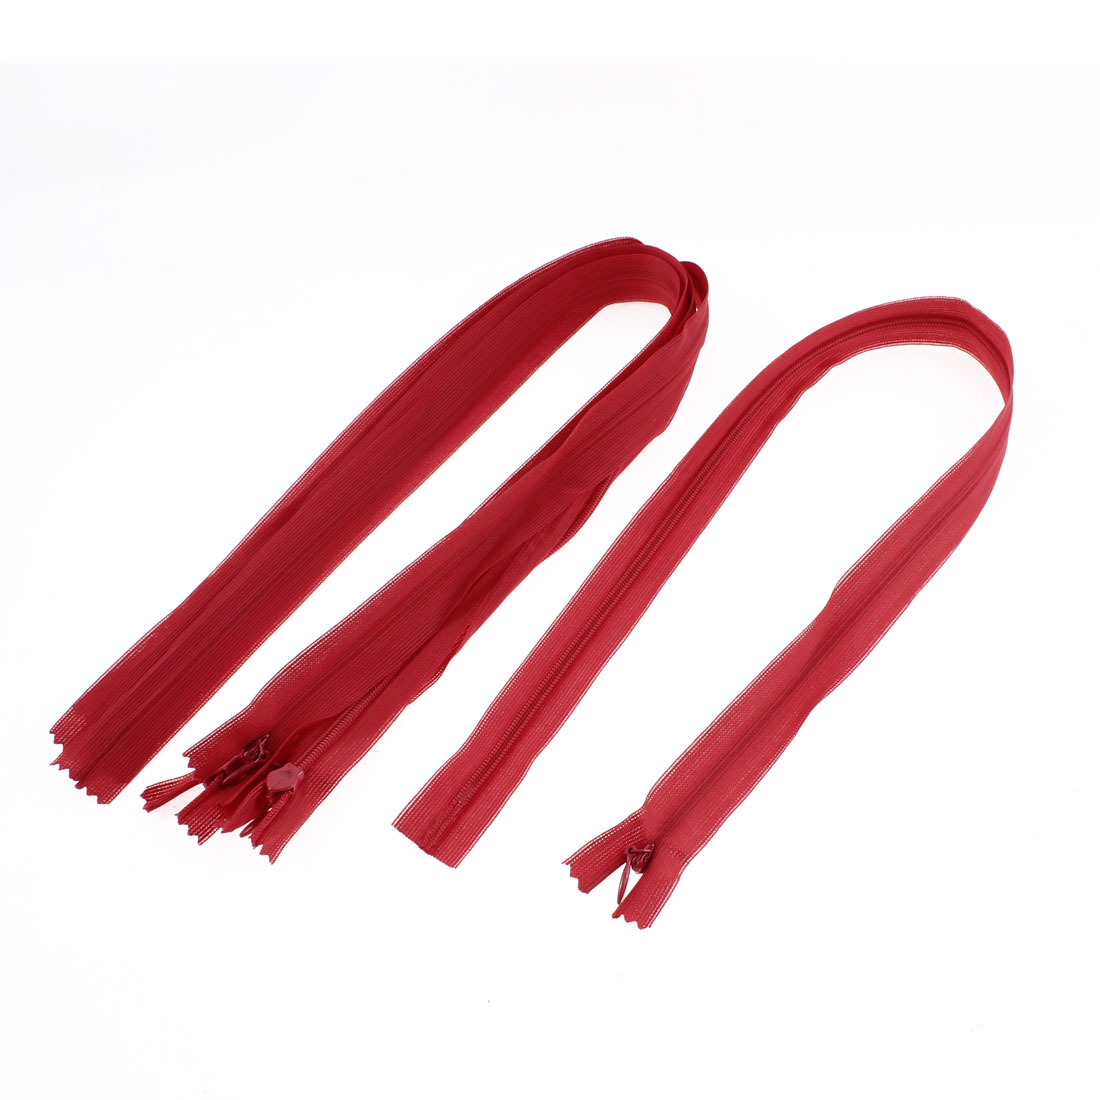 Dress Pants Closed End Nylon Zippers Tailor Sewing Craft Tool Red 55cm 5 Pcs